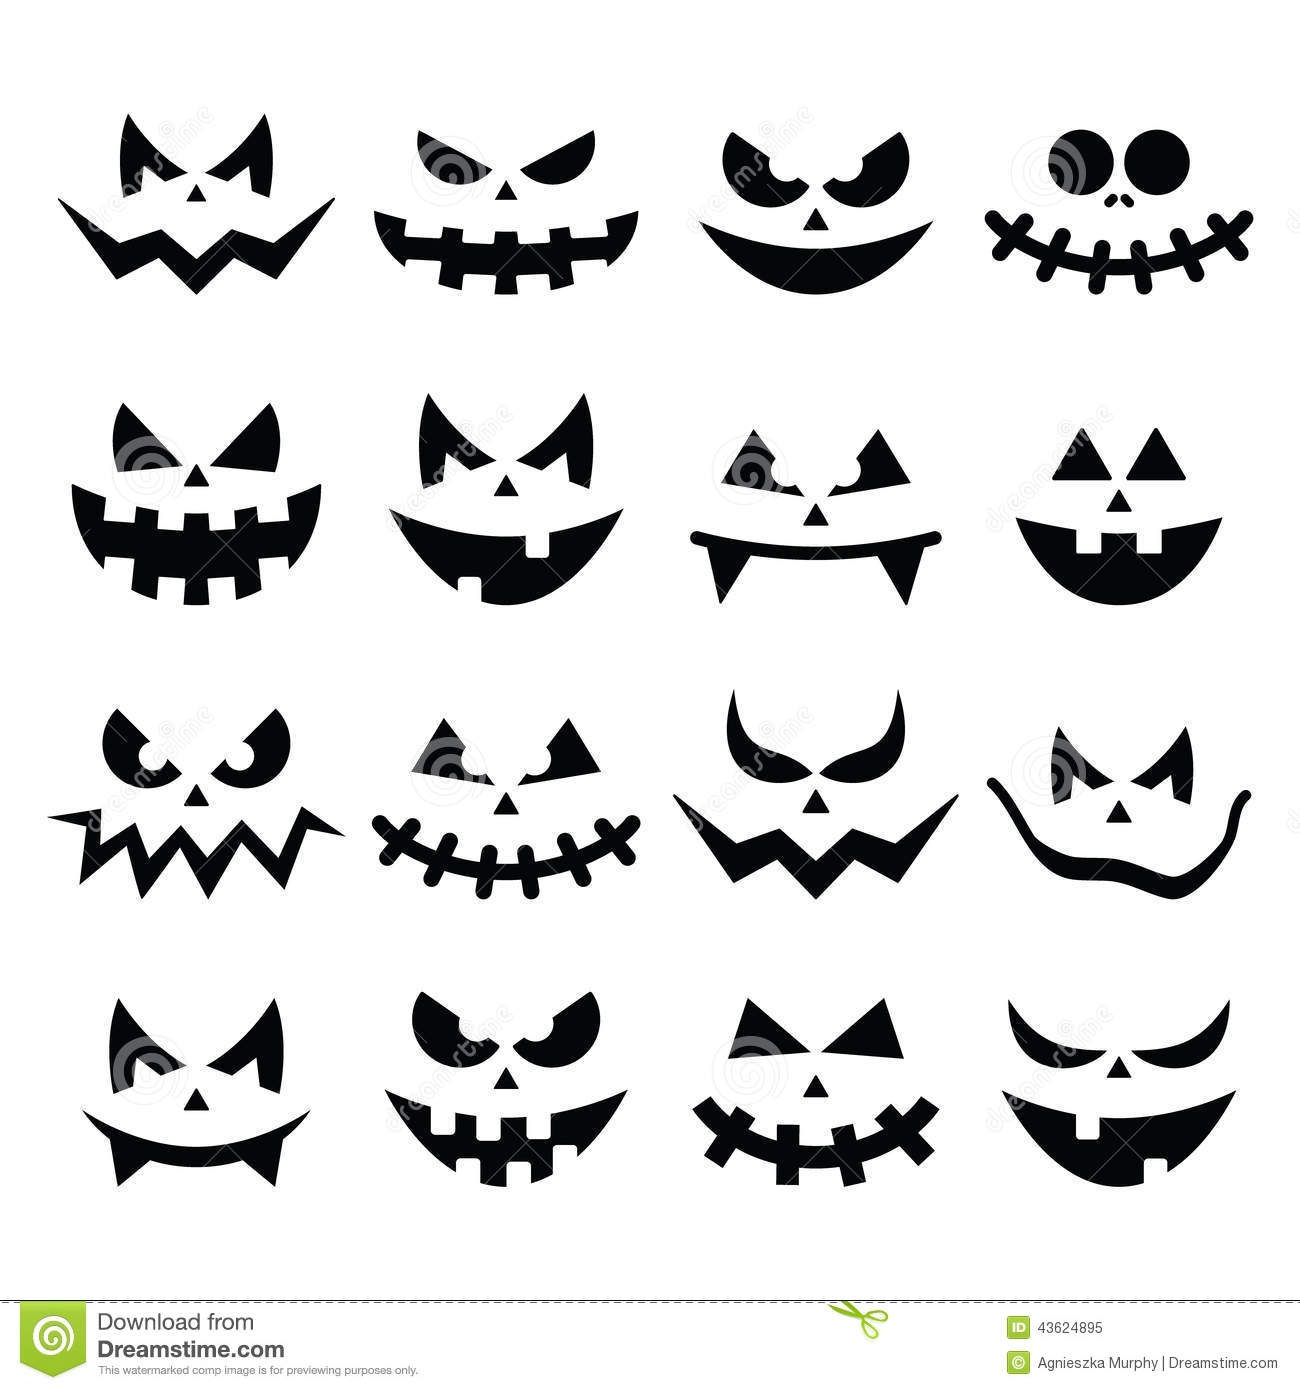 Pumpkin Face Clipart Black And White